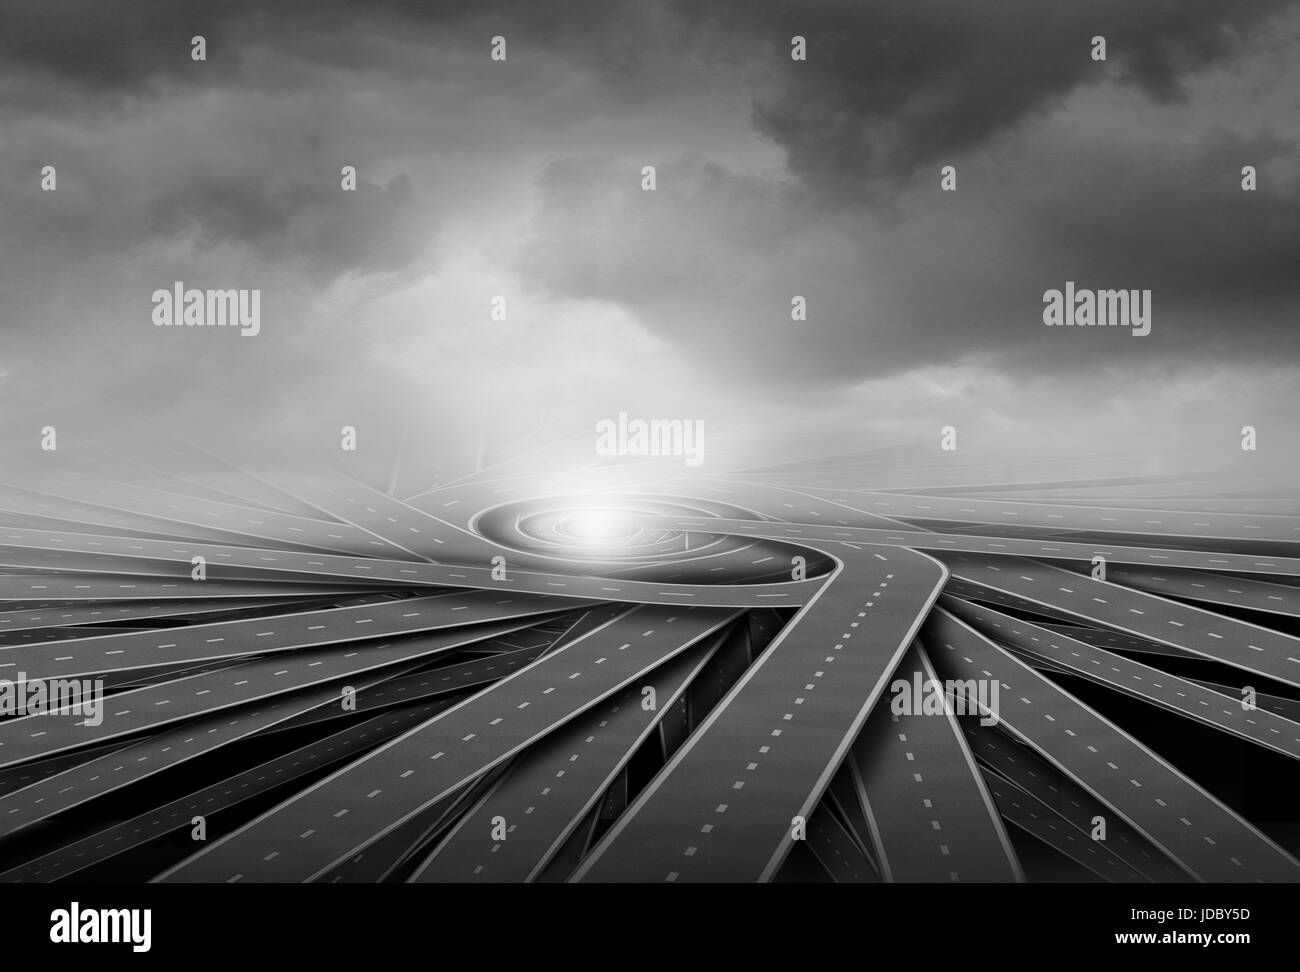 Centralization concept and center of business focus metaphor as a group of twisted paths connecting together as - Stock Image